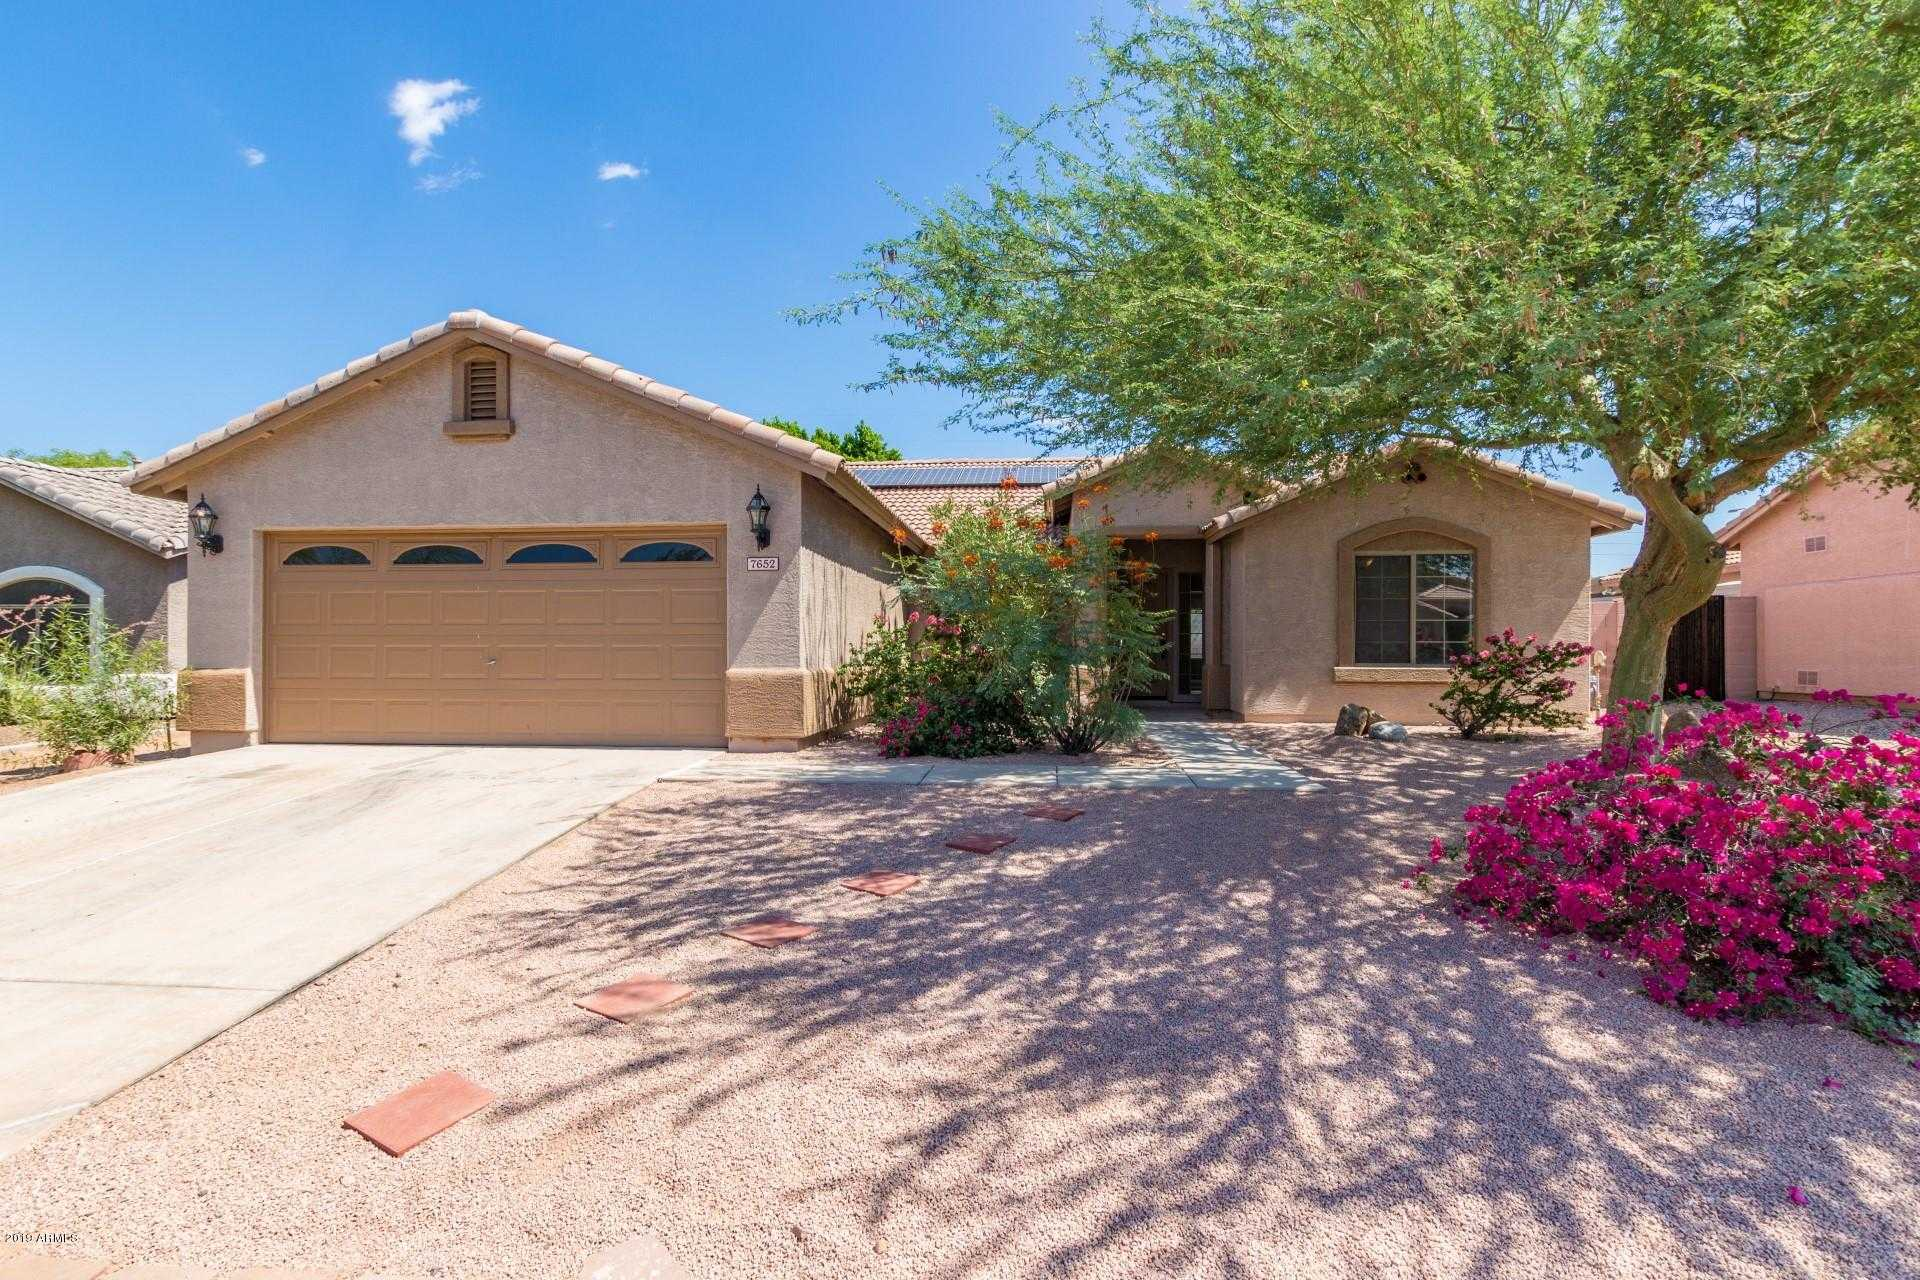 $300,000 - 4Br/2Ba - Home for Sale in Adobe Hills Of Mesa, Mesa